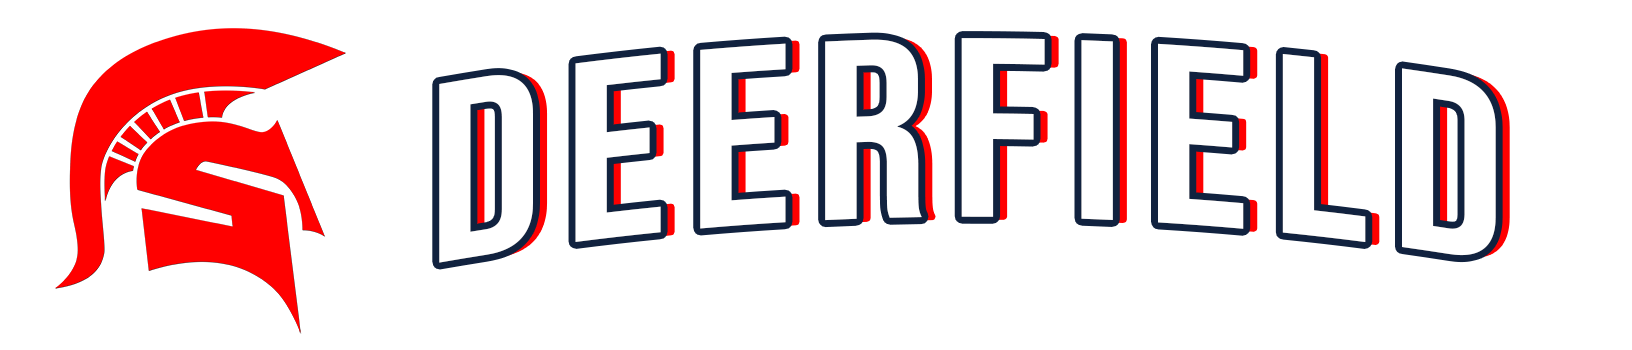 Deerfield USD 216 Logo